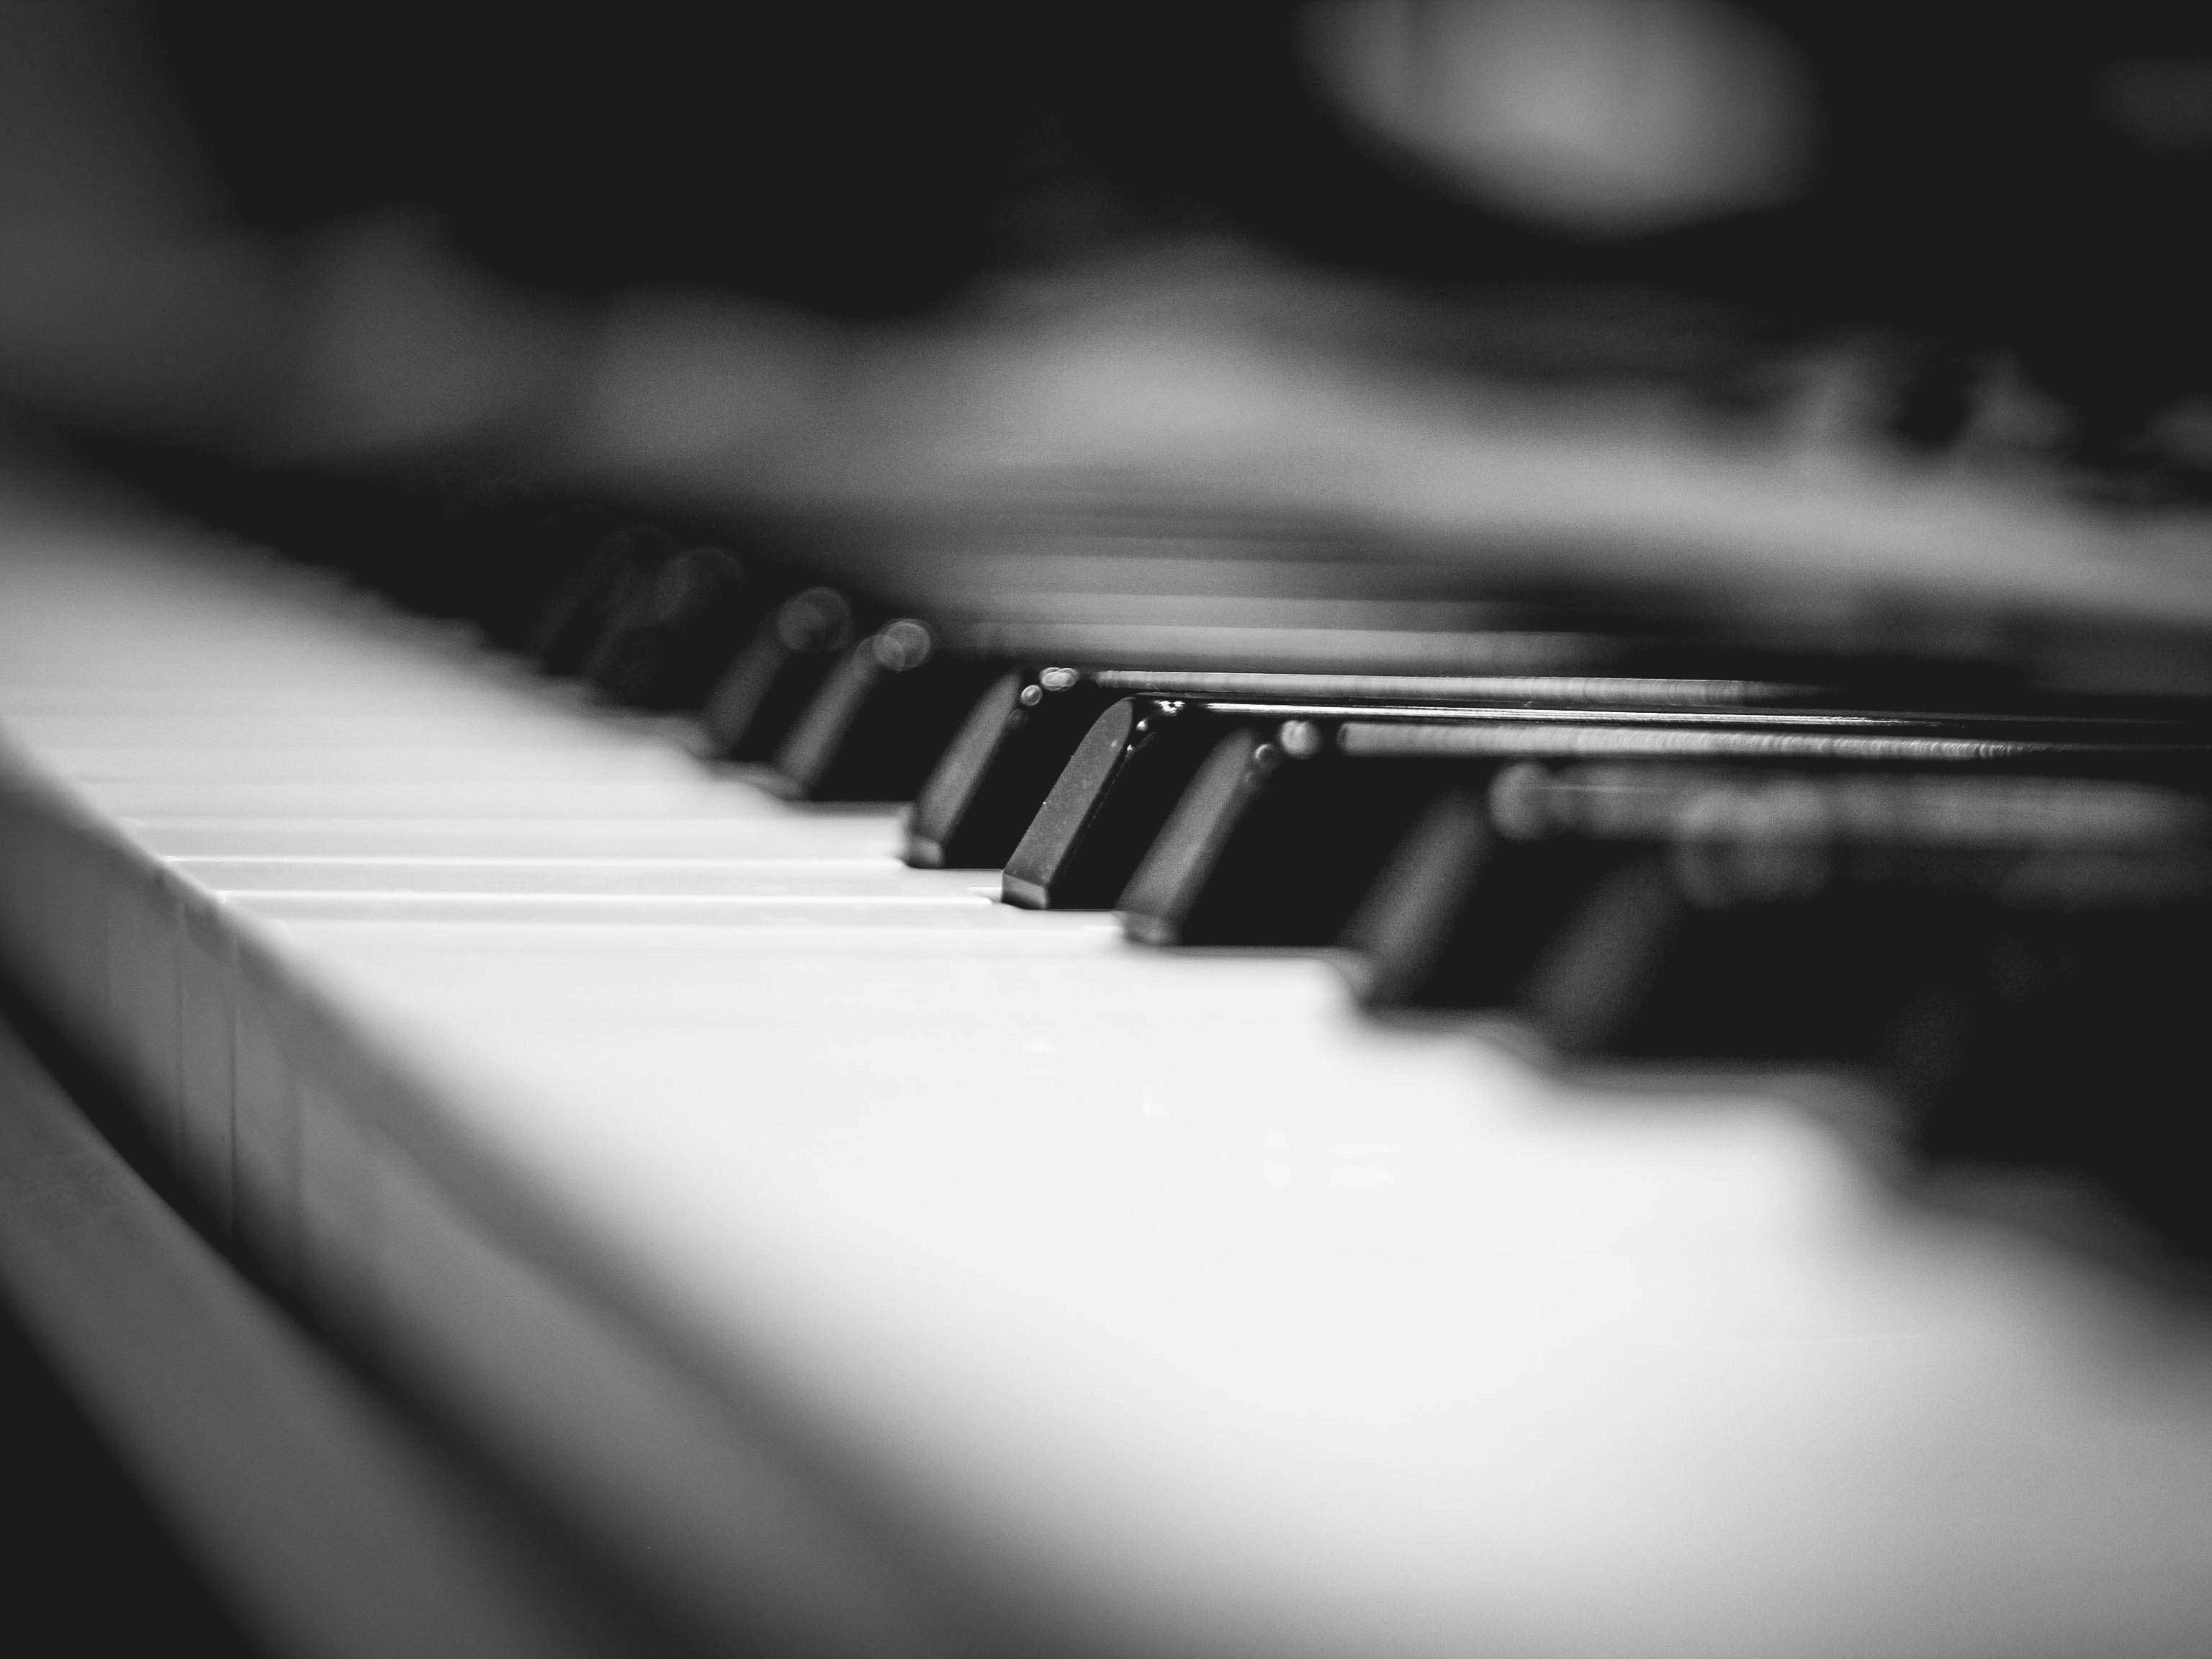 Piano keys photos